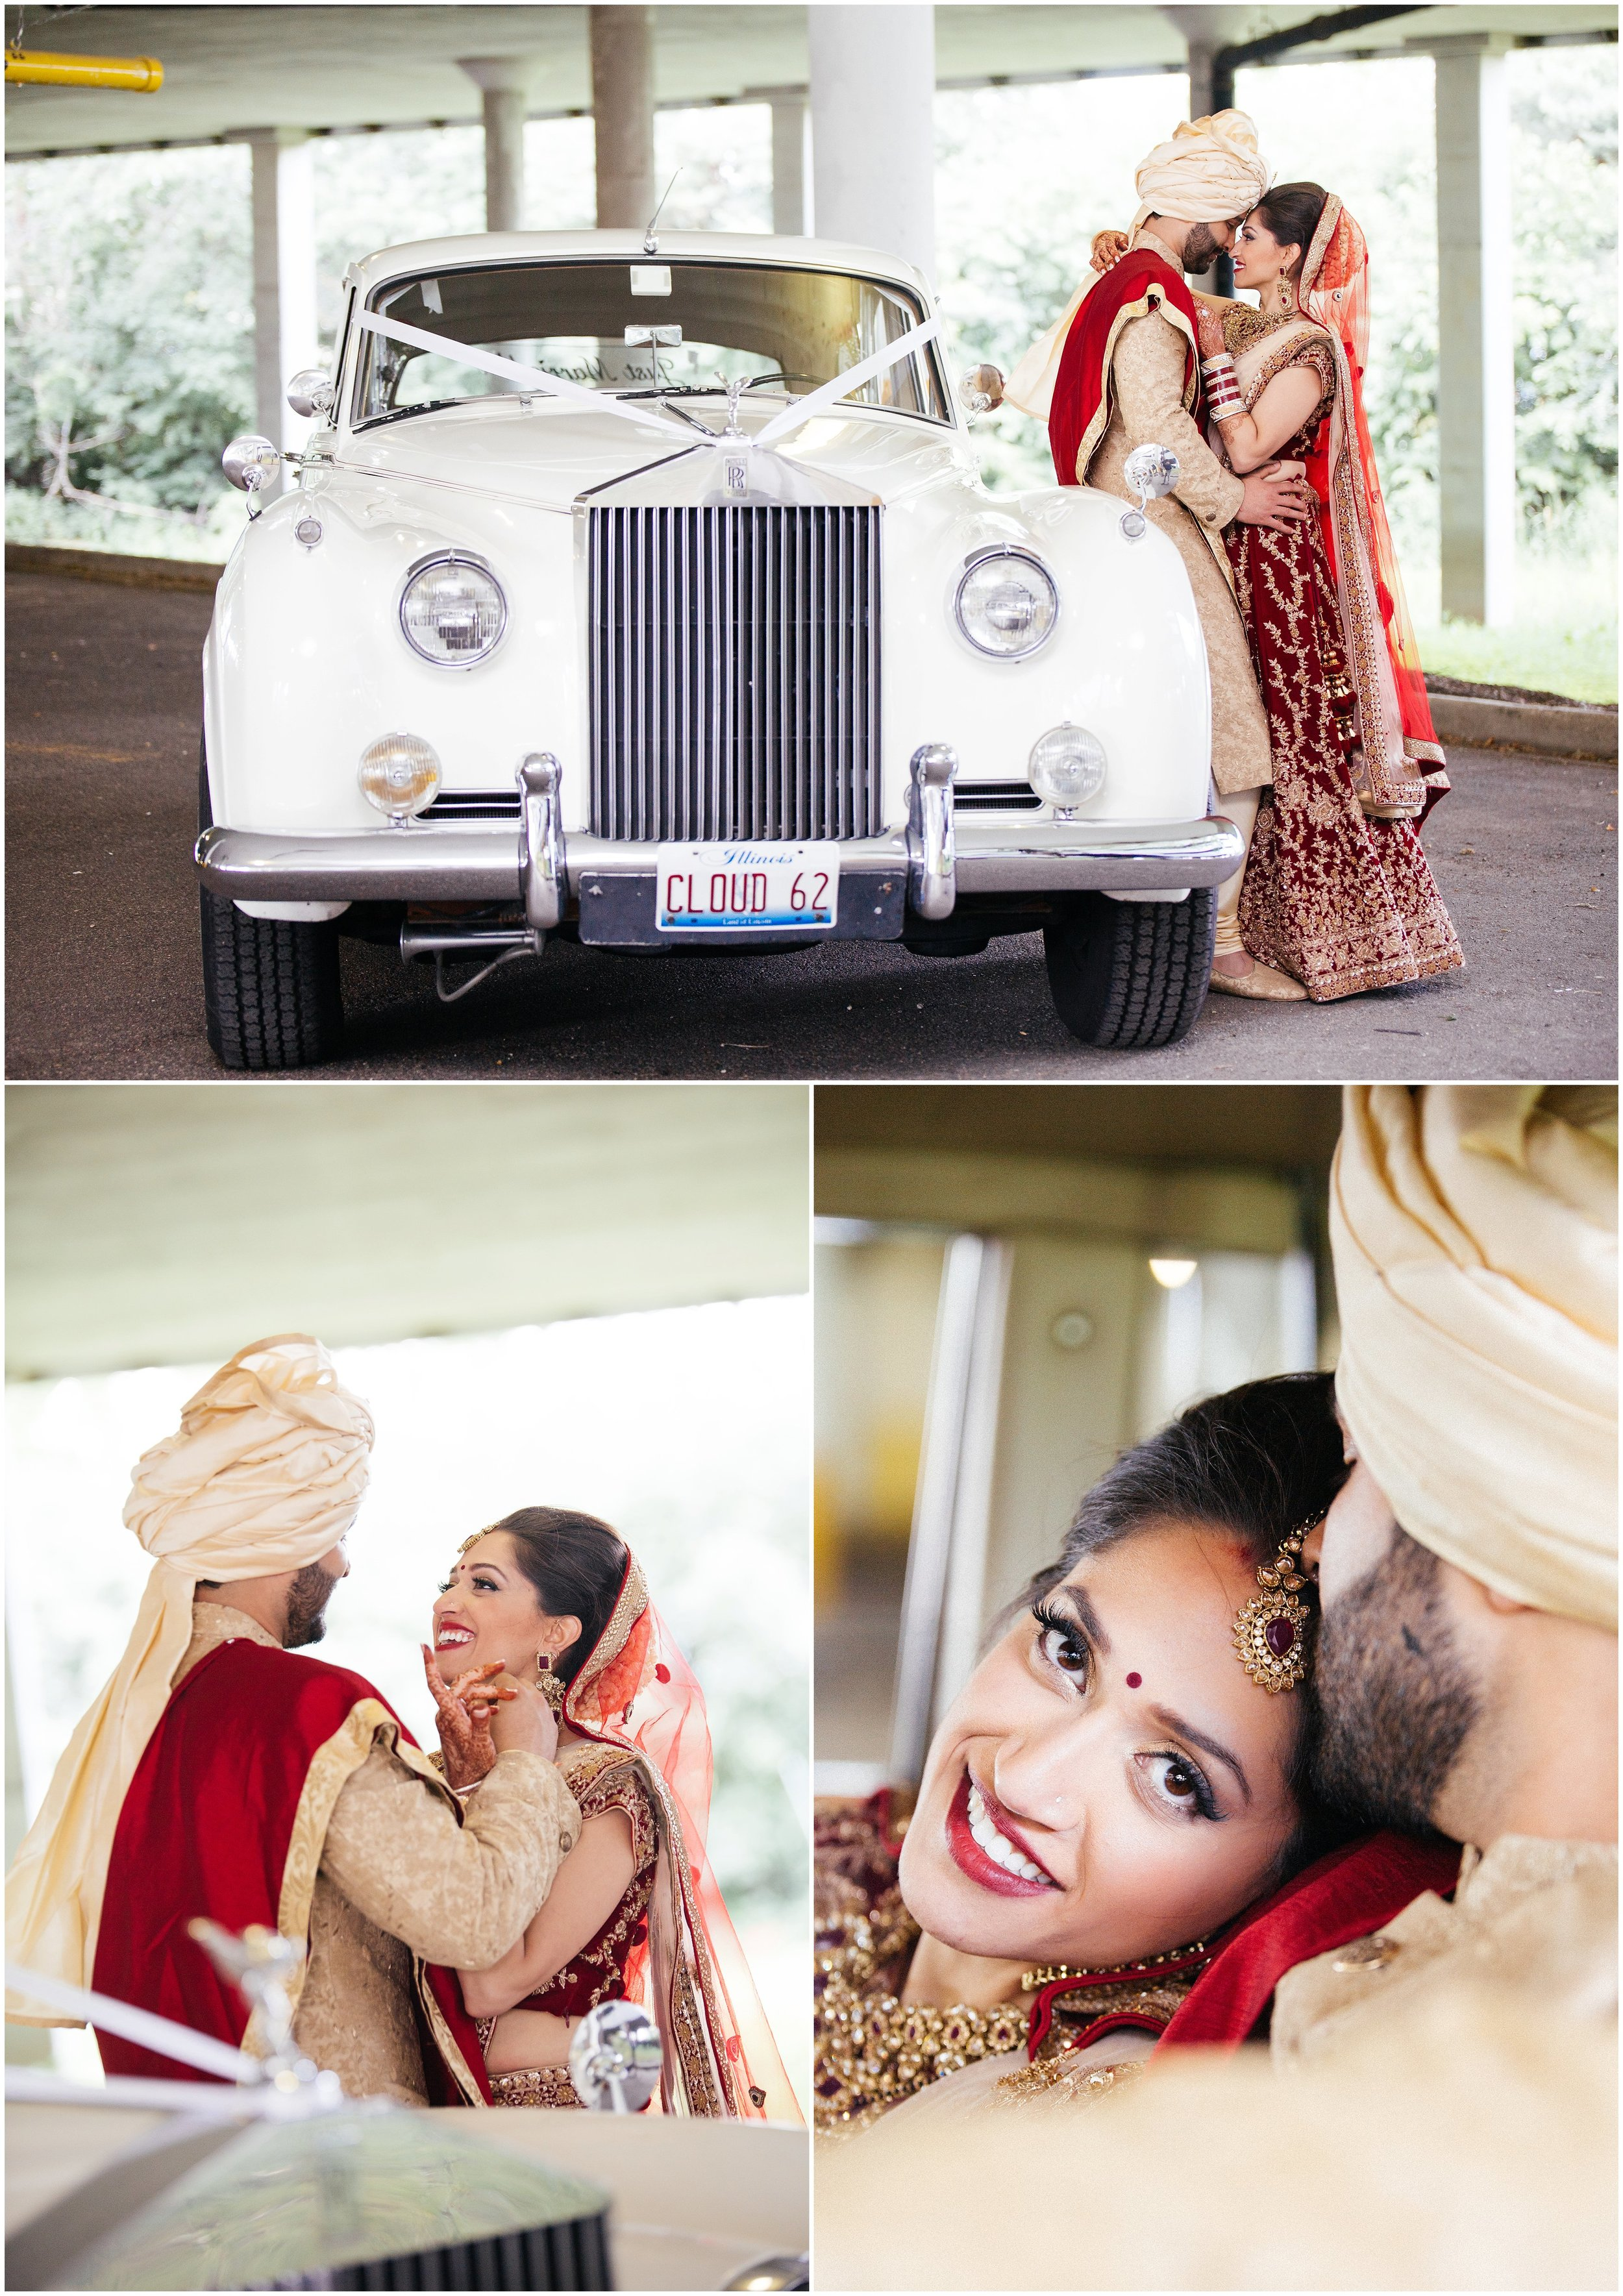 Le Cape Weddings - South Asian Wedding in Illinois - Tanvi and Anshul -0671_LuxuryDestinationPhotographer.jpg